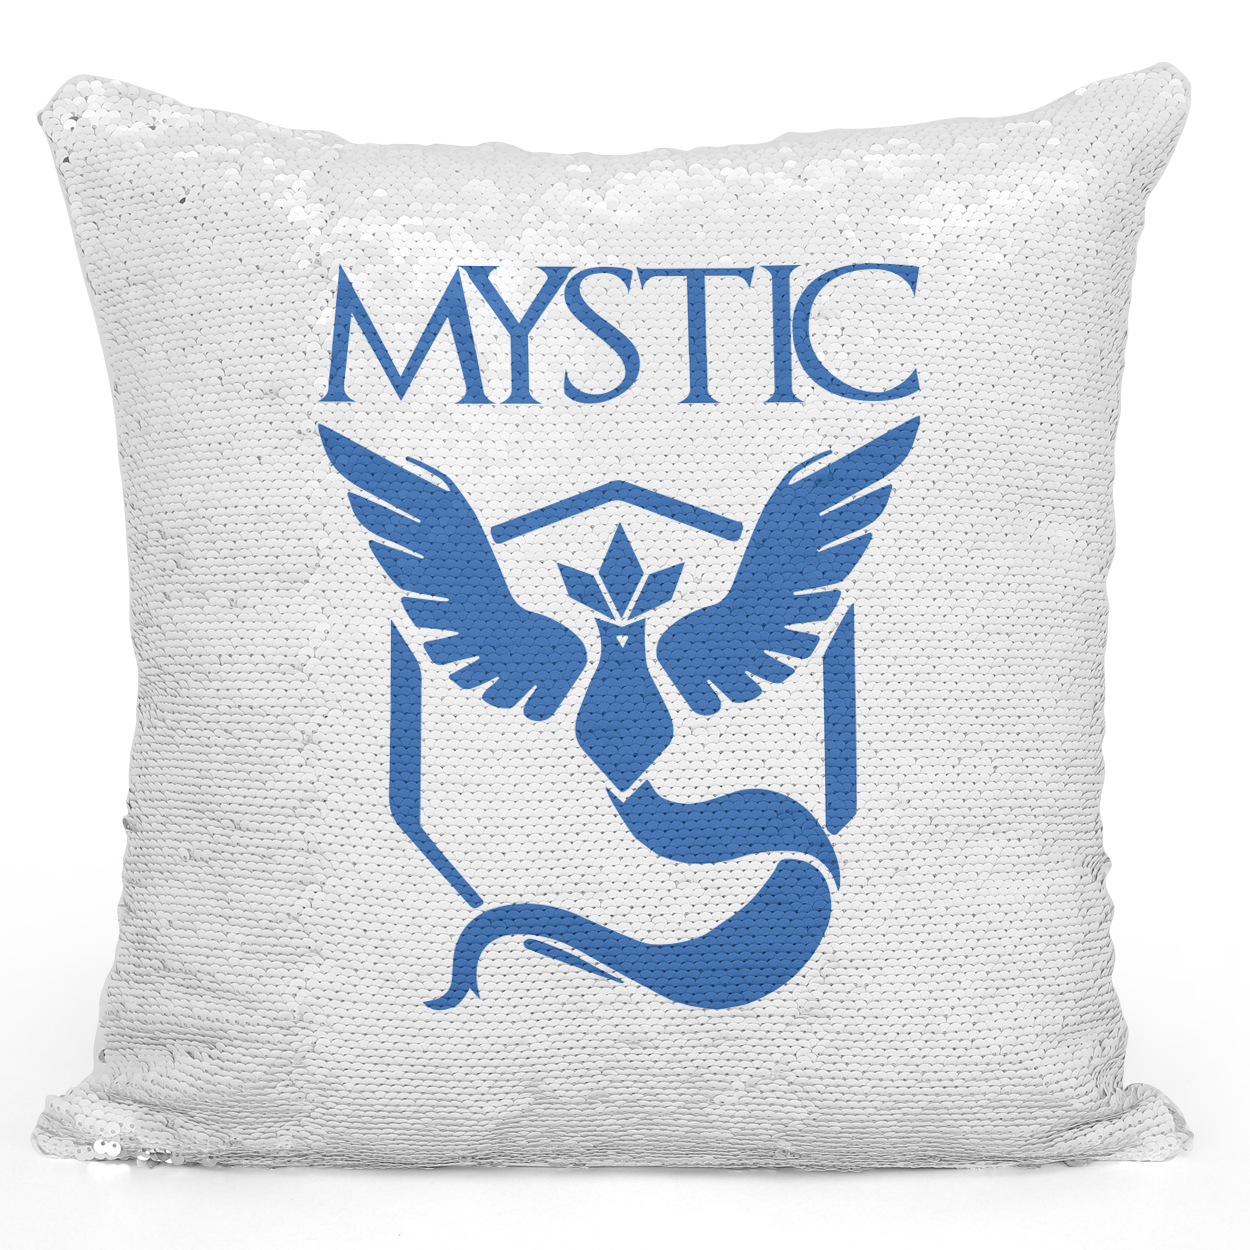 Sequin Pillow Magic Mermaid Throw Pillow Team Mystic Game Pillow - Durable White 16 x 16 inch Square Modern Livingroom Decorative Pillow Loud Universe